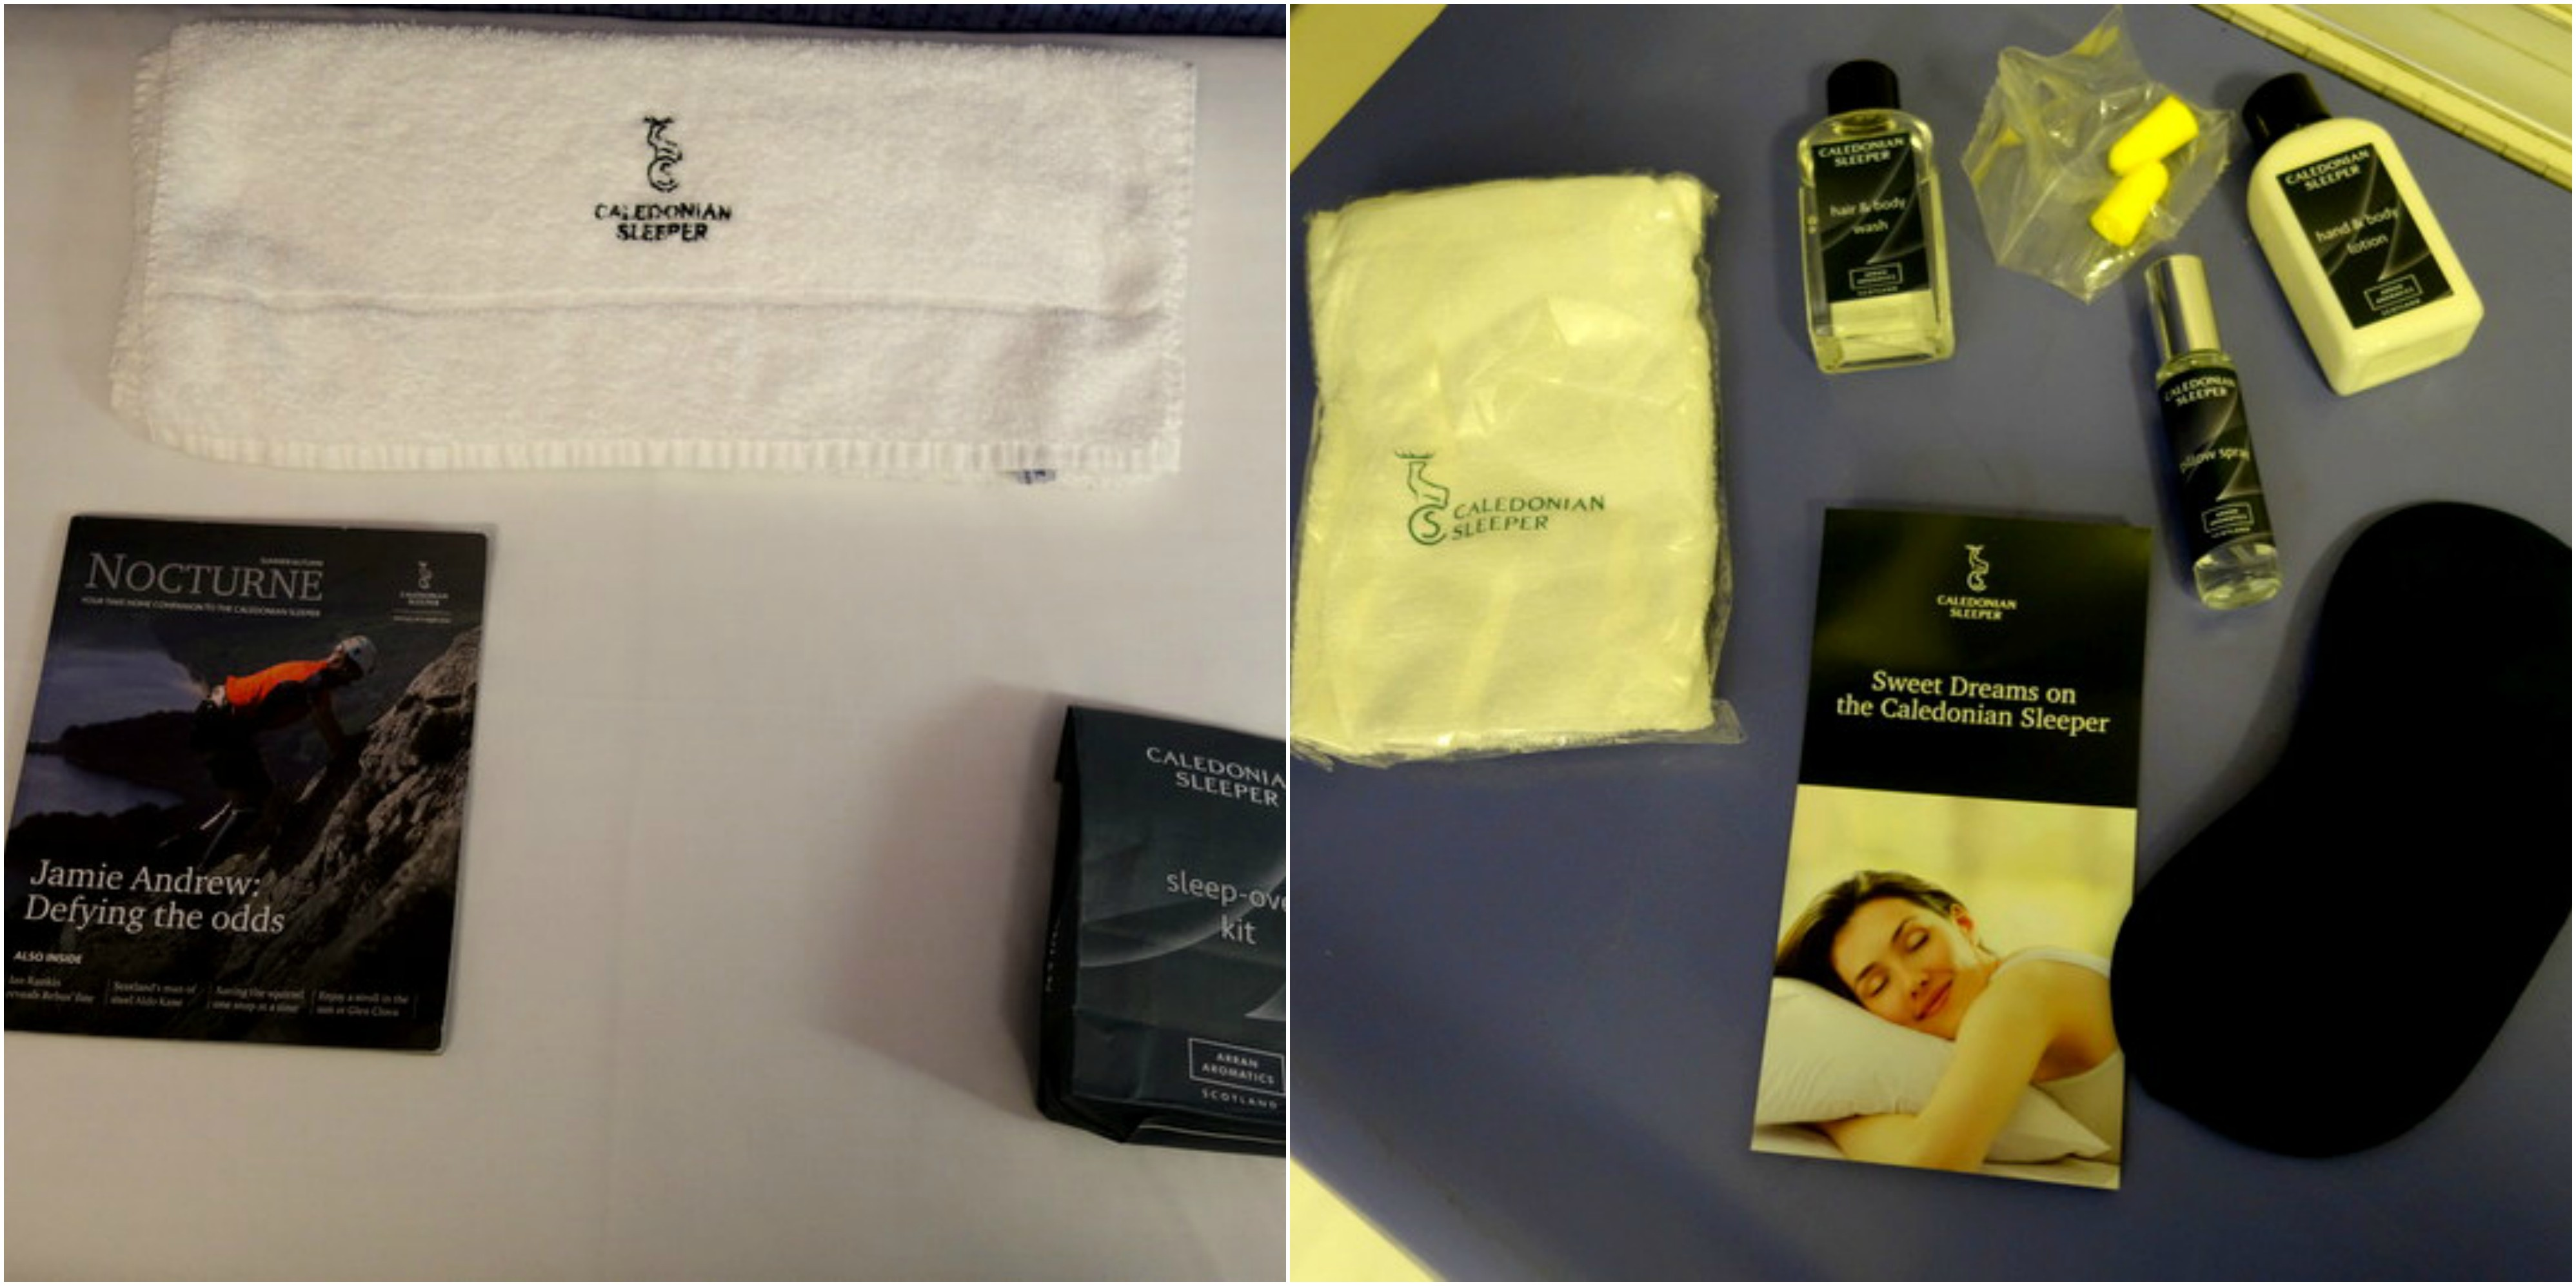 Travel Kit on The Caledonian Sleeper - The Best Way To Travel From London To Edinburgh